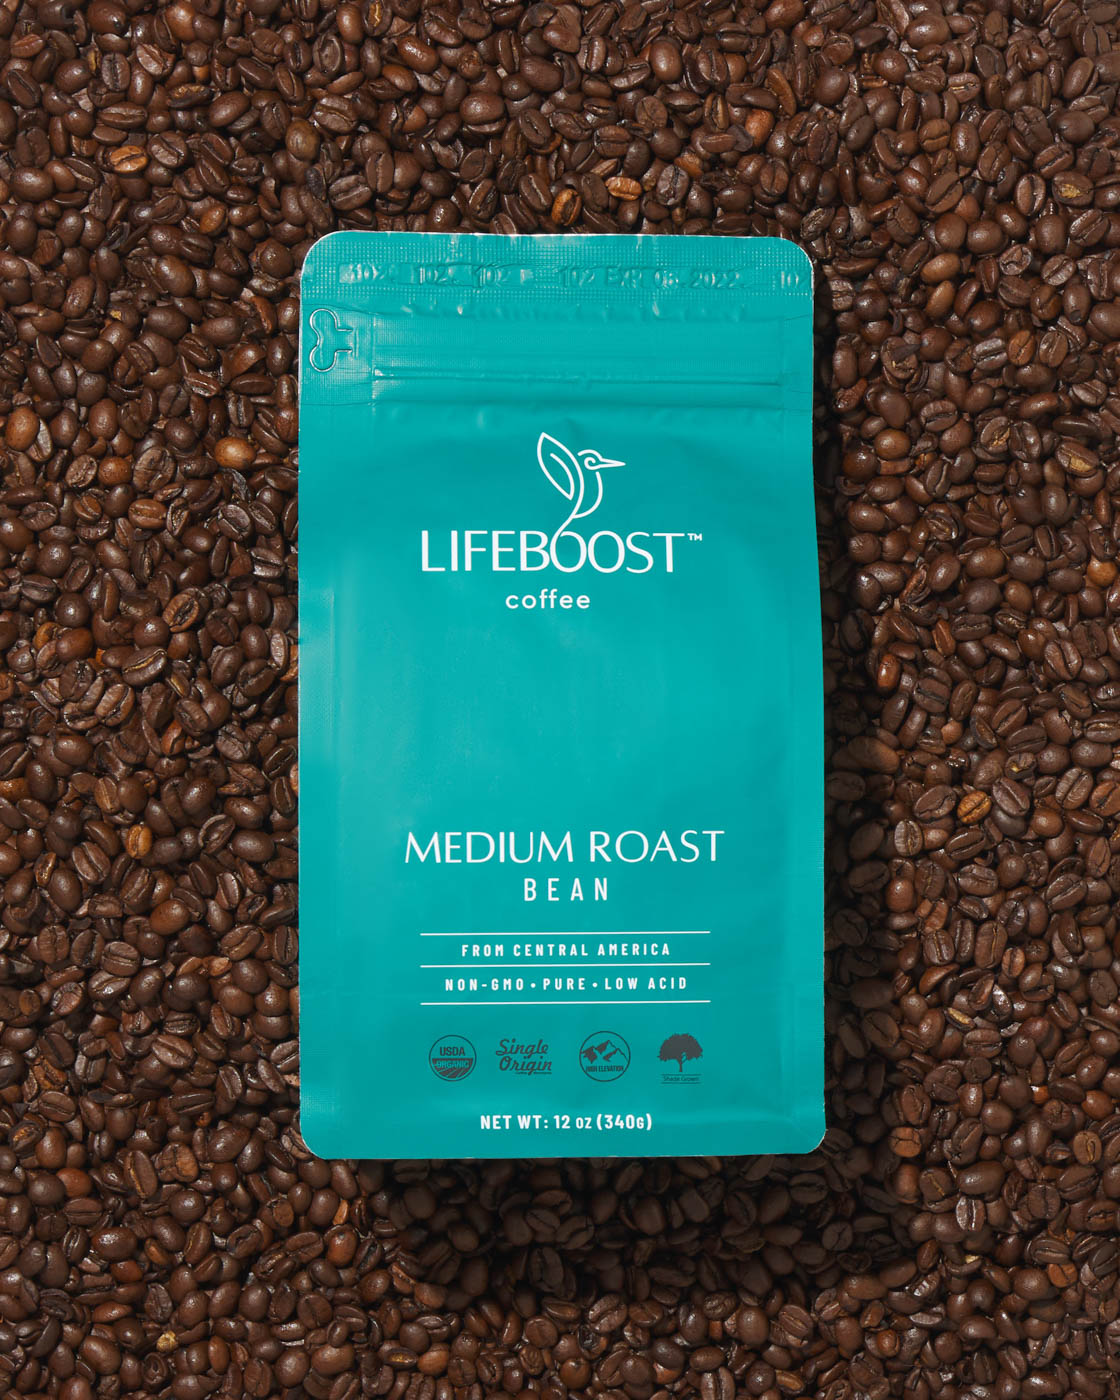 Lifeboost-life-boost-coffee-editorial-style-commercial-photographer-photography-damion-lloyd-product-food-drink-beans-medium-roast